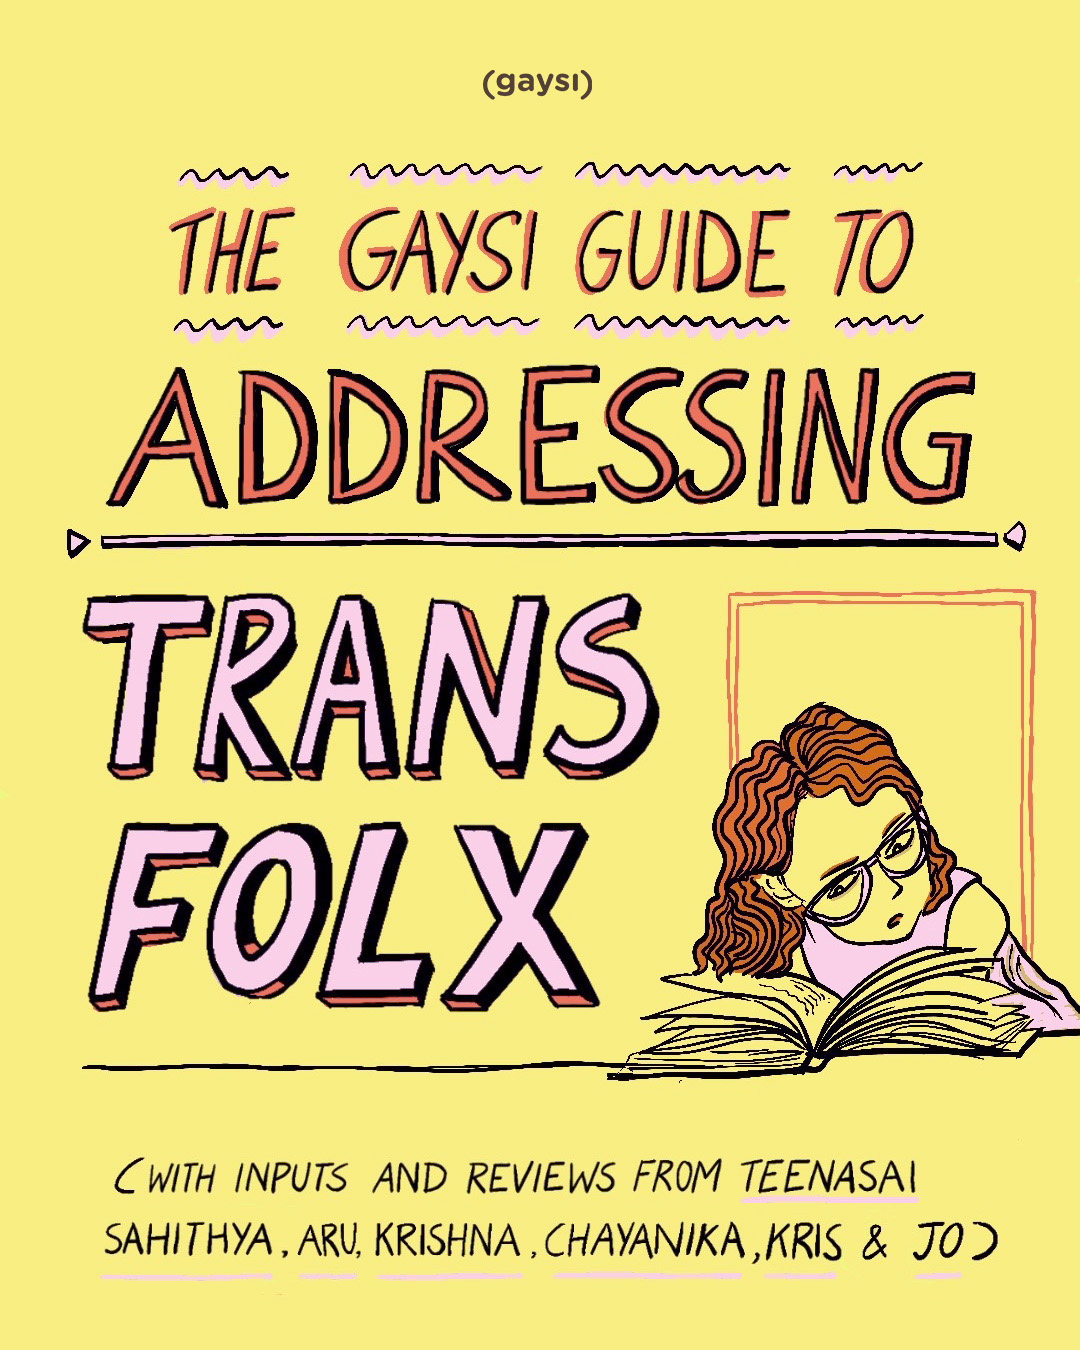 The Gaysi Guide To Addressing Trans Folx